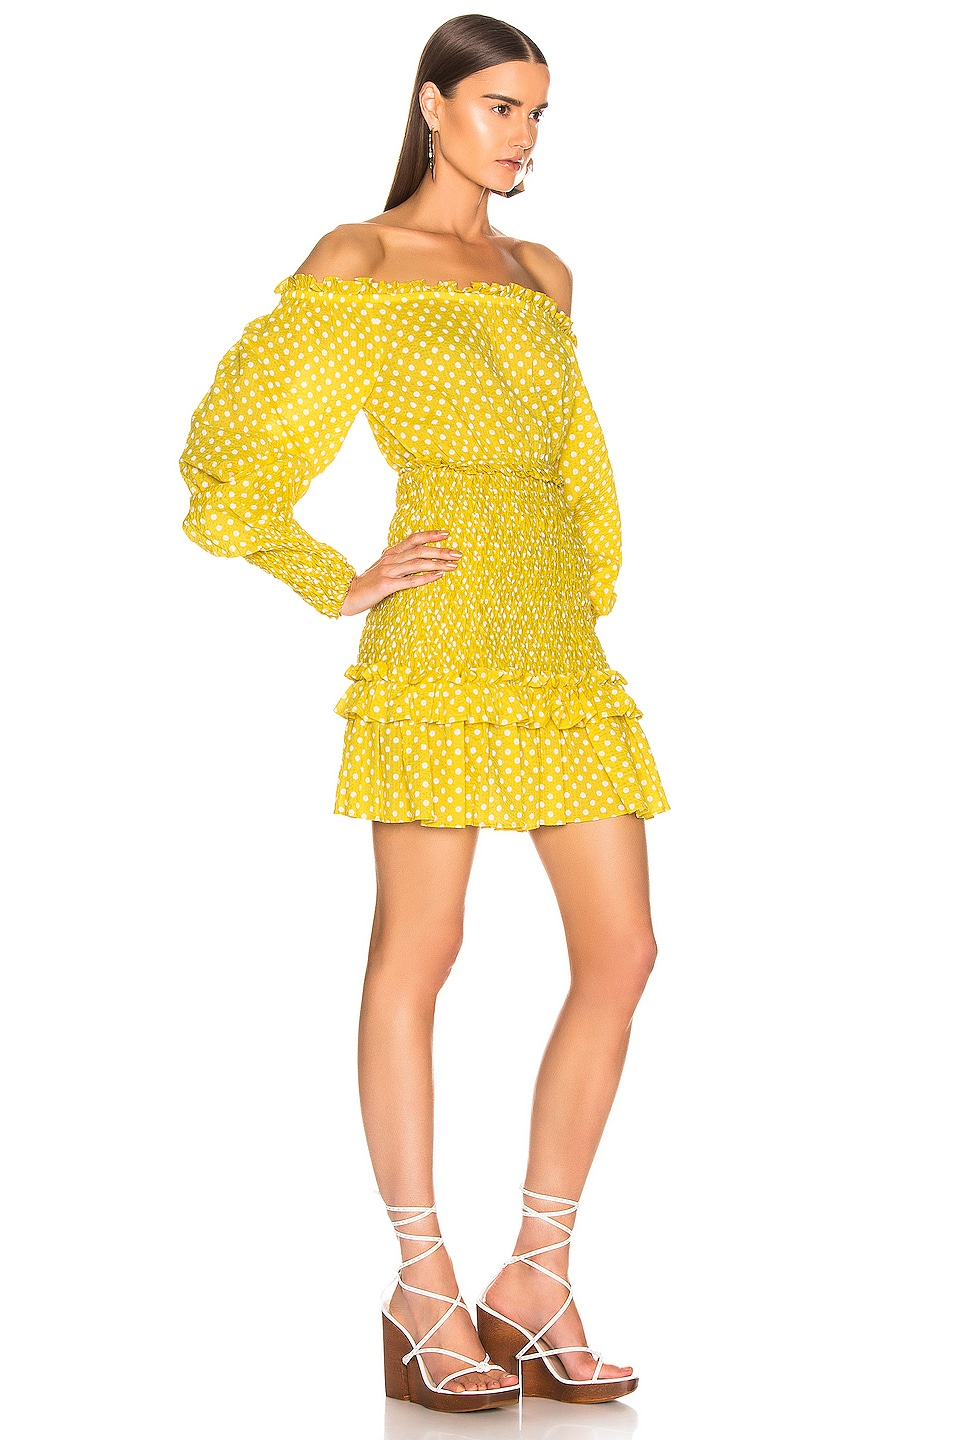 Image 2 of Alexis Marilena Dress in Yellow Dot